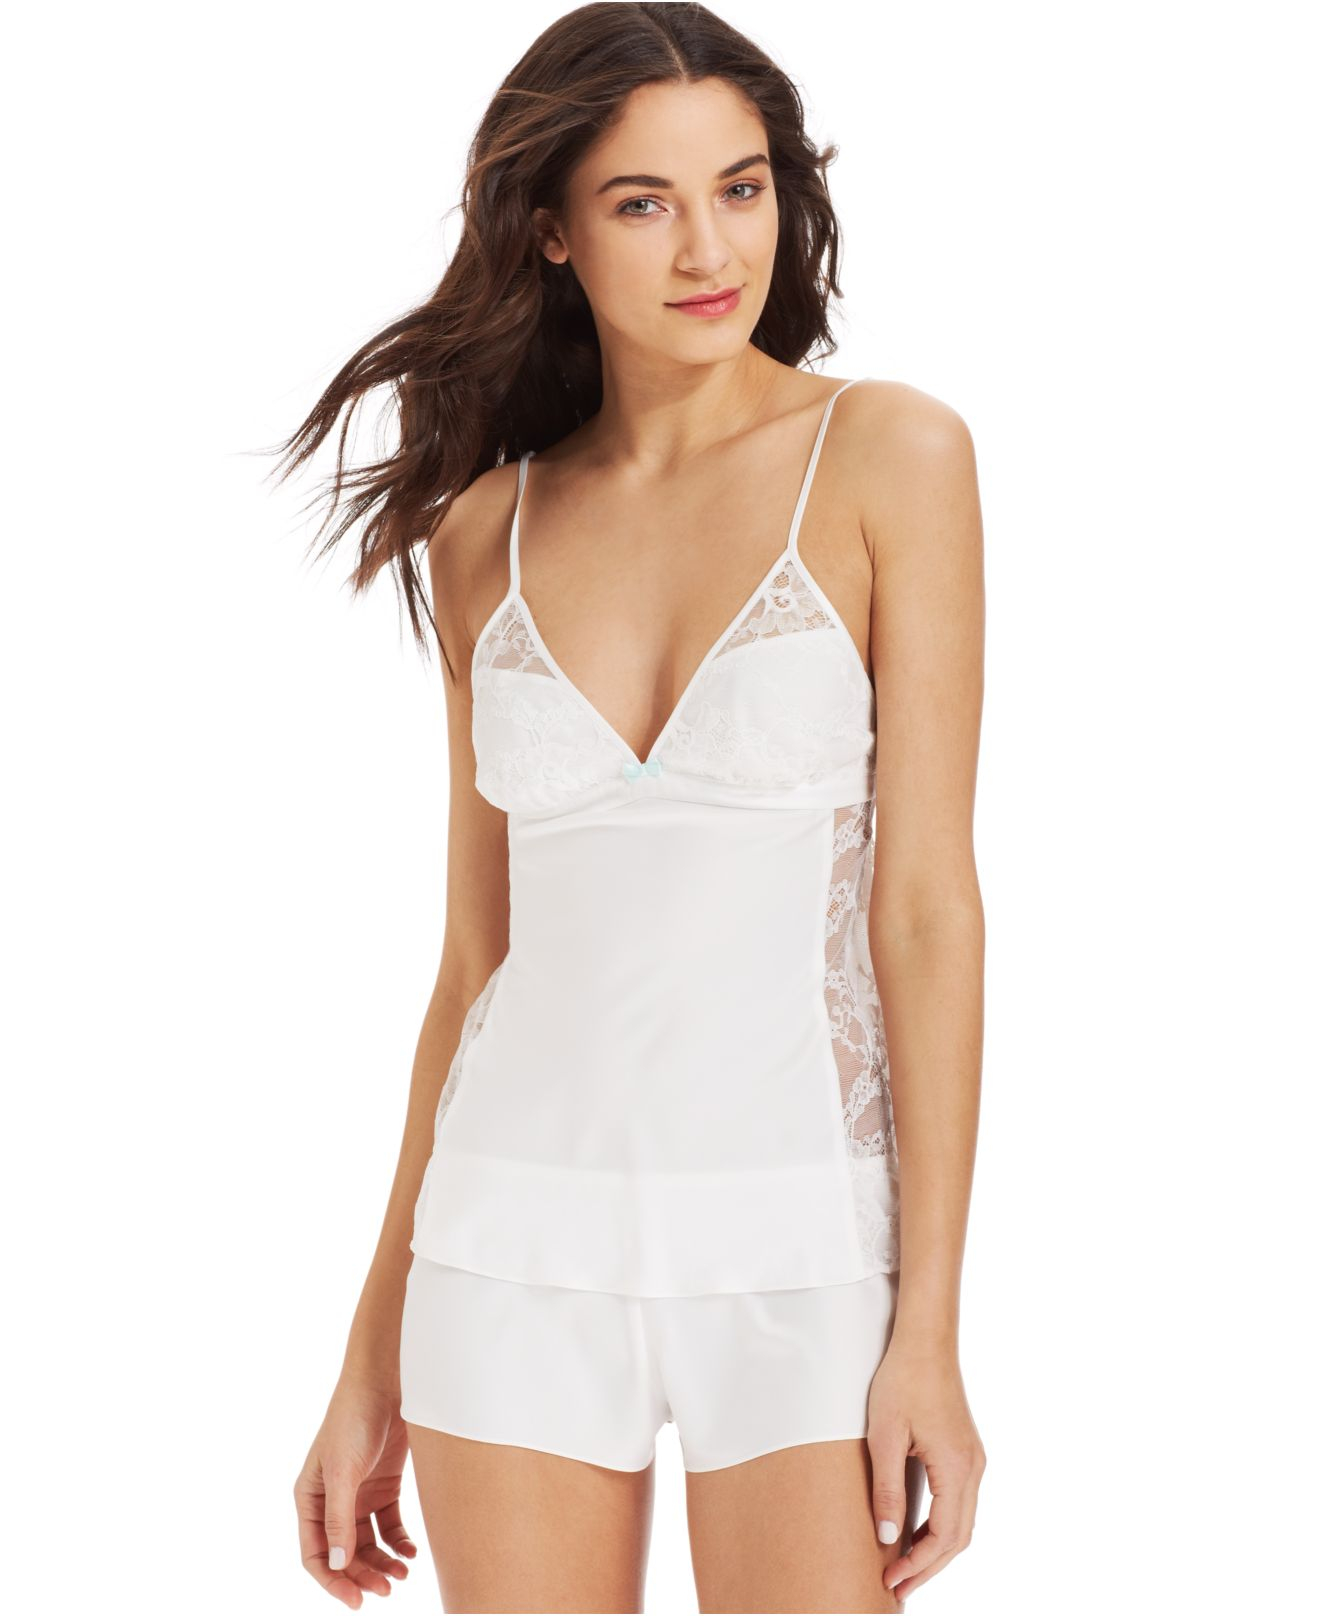 7a5c154beec Betsey Johnson Sultry Satin Fly Camisole And Tap Shorts 731706 in ...